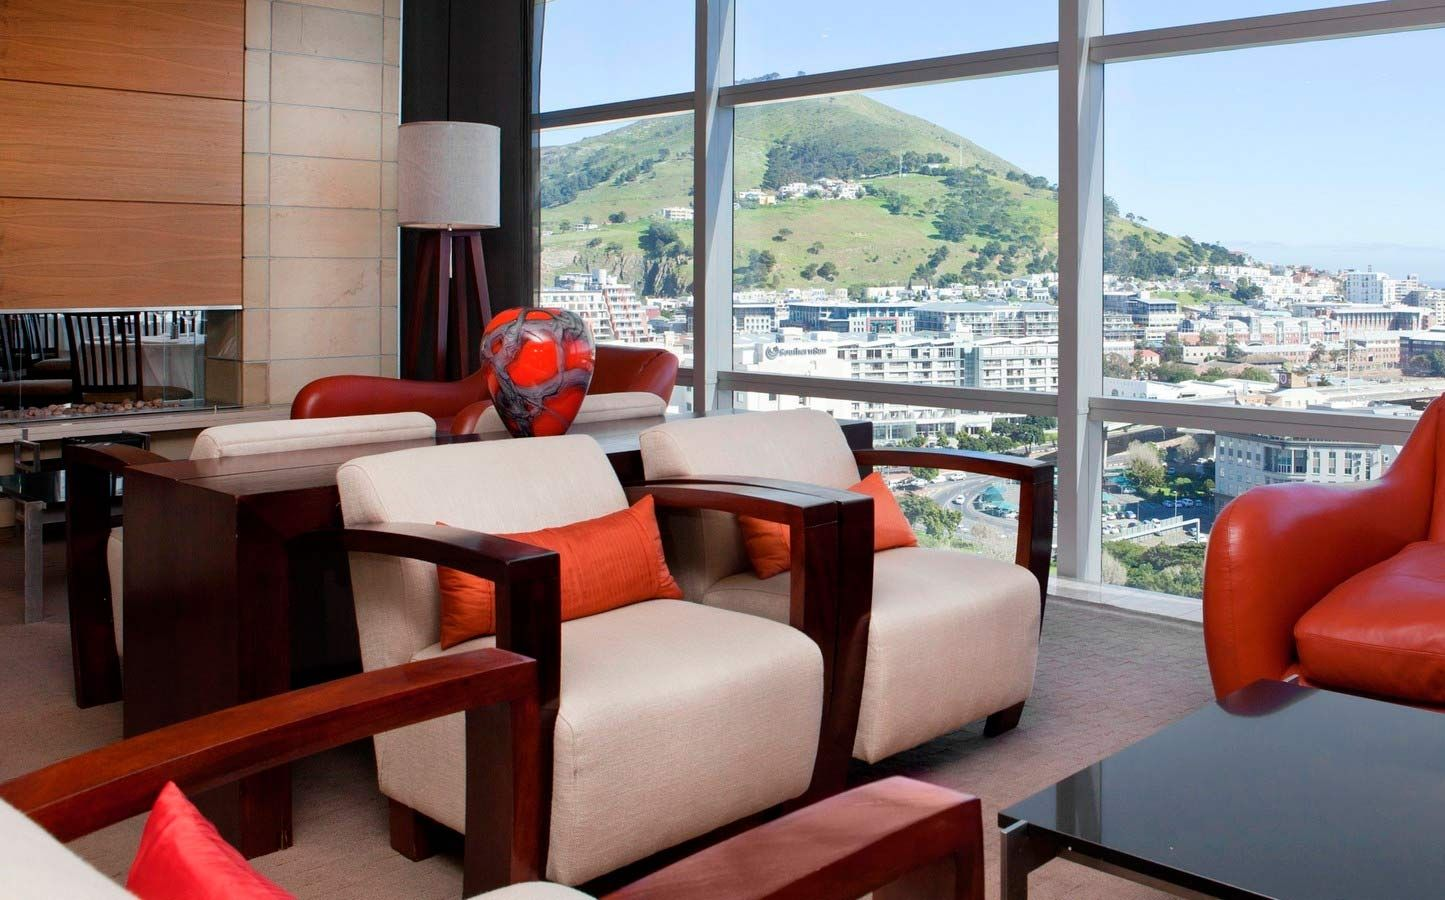 Westin Cape Town Executive Club Lounge In ON19 With Mountain View